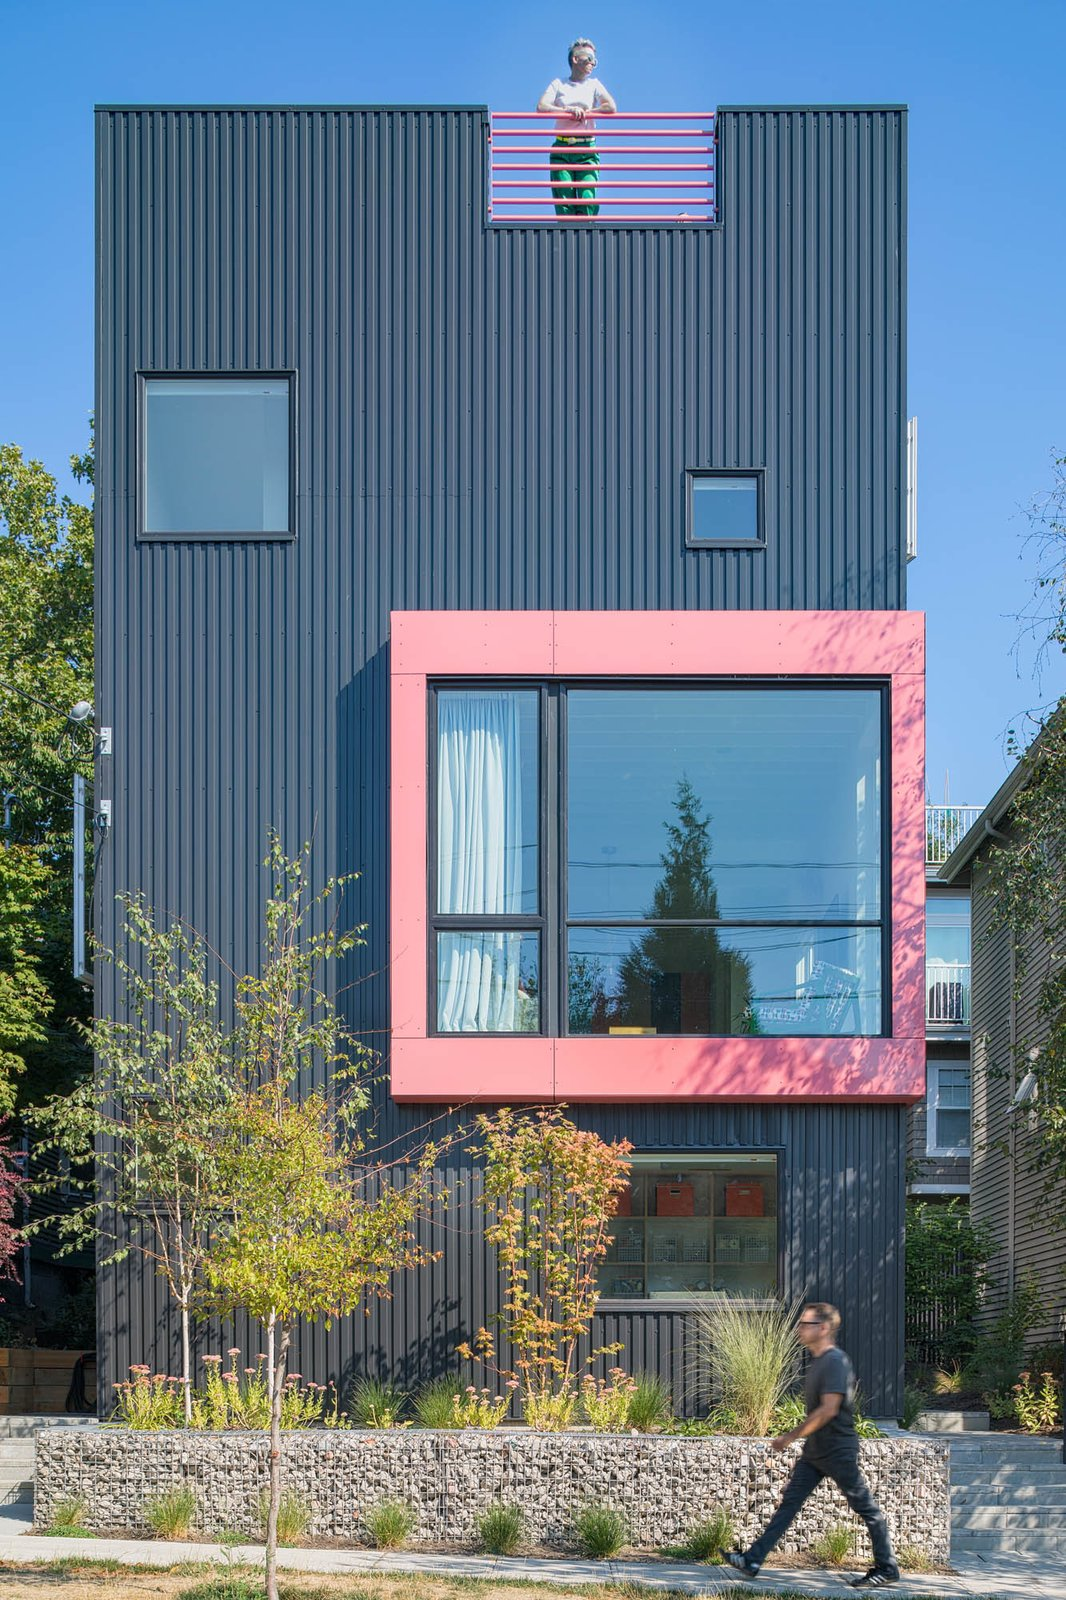 Top 5 Homes of the Week With Alluring Exteriors